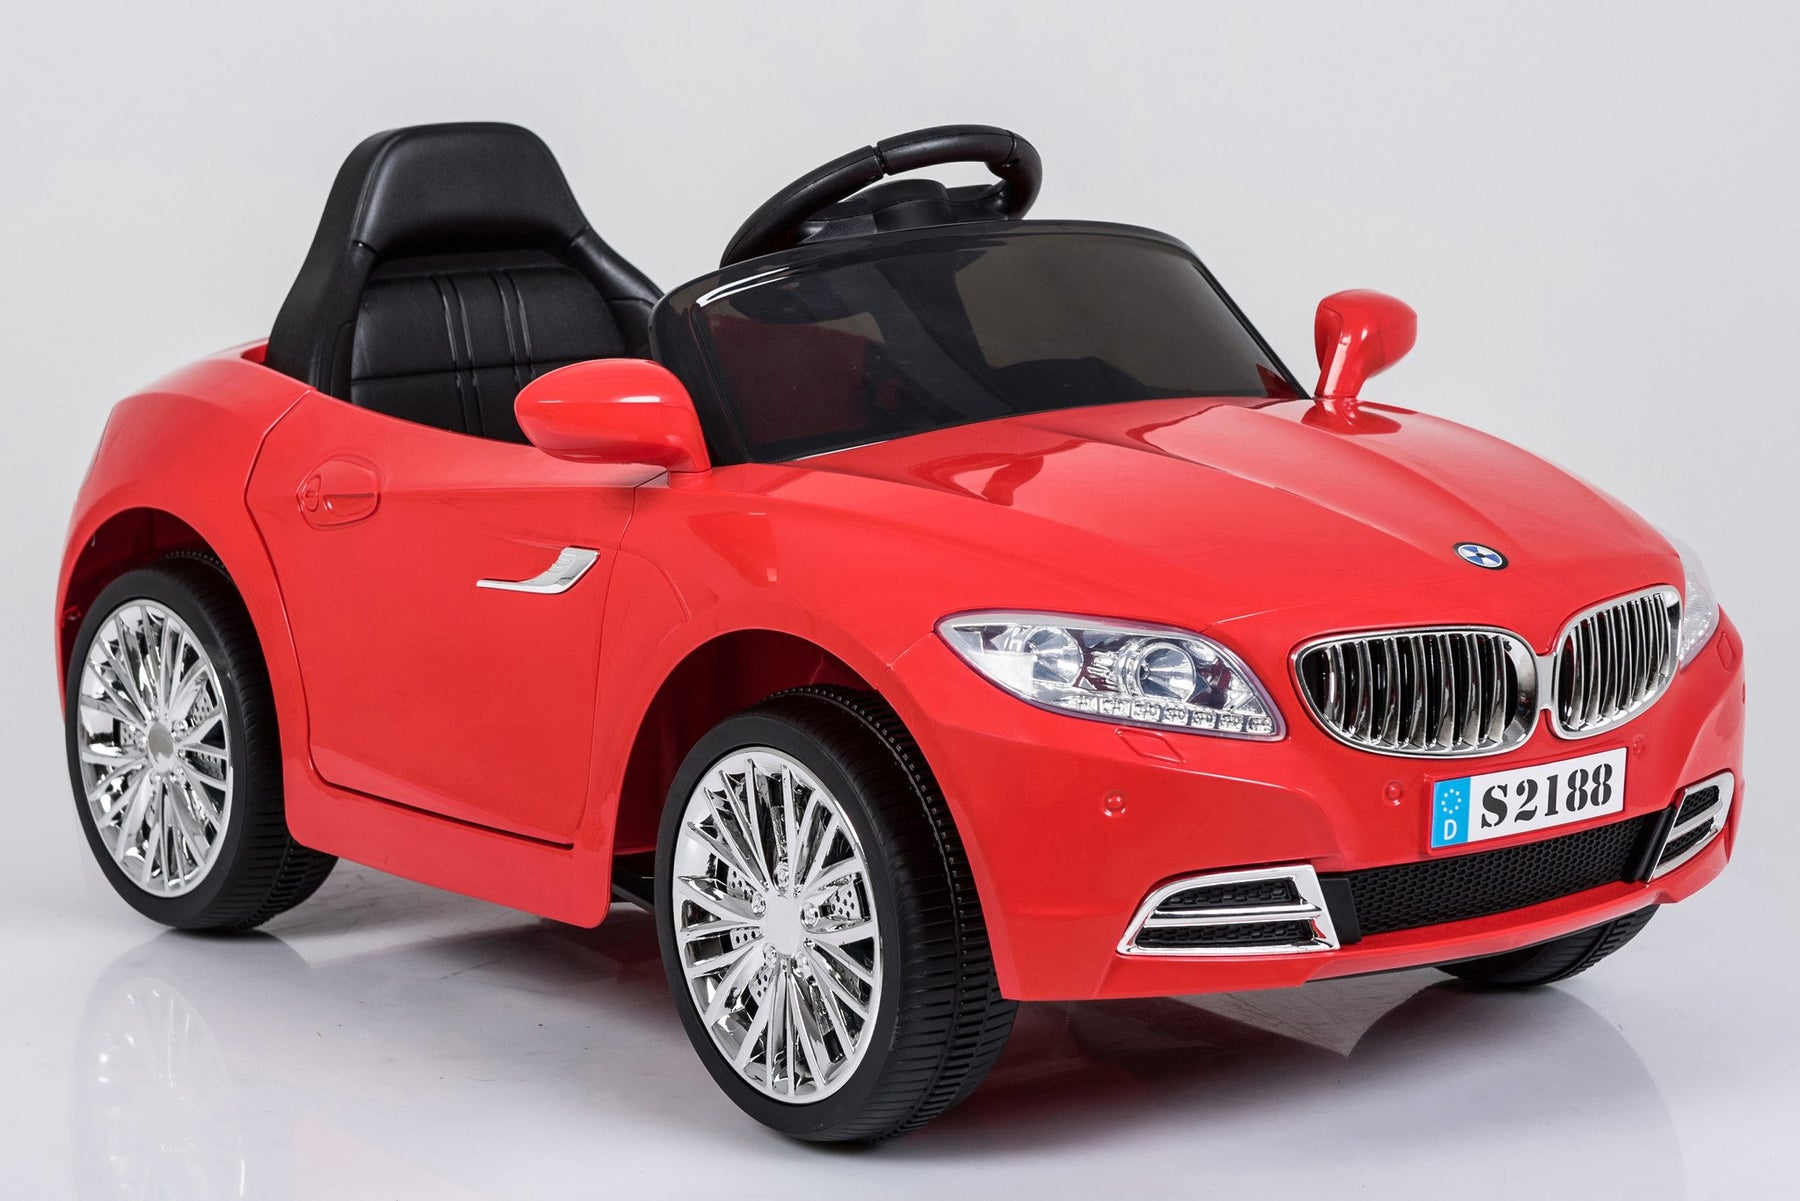 Kids 2x6V 15W TWO MOTORS Battery Powered BMW Style Electric Ride On Toy Car (Model: S2188) RED - GADGET EXPRESS®